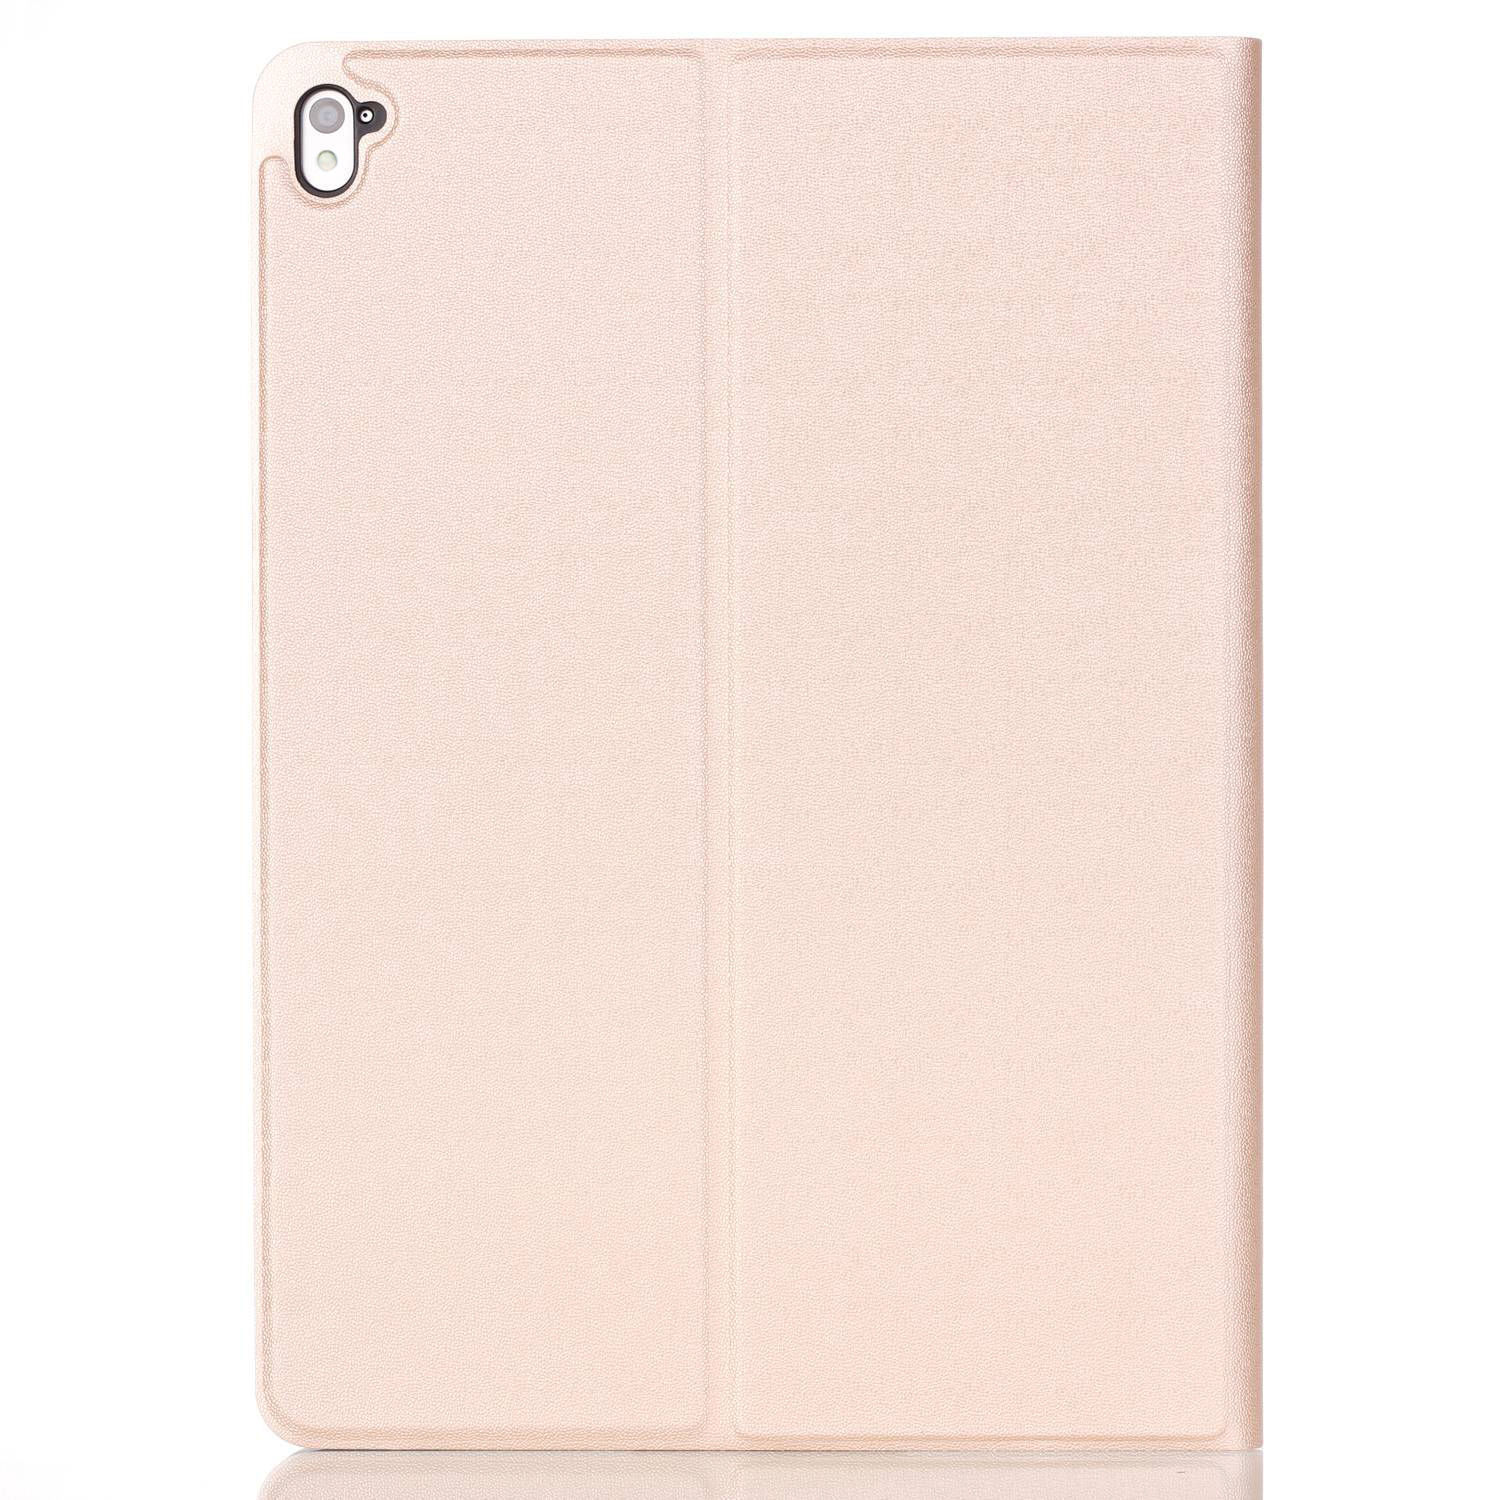 Custodia-Per-Apple-IPAD-Pro-IN-9-7-Pollici-Case-Cover-Protettiva-Skin-Shell miniatura 44